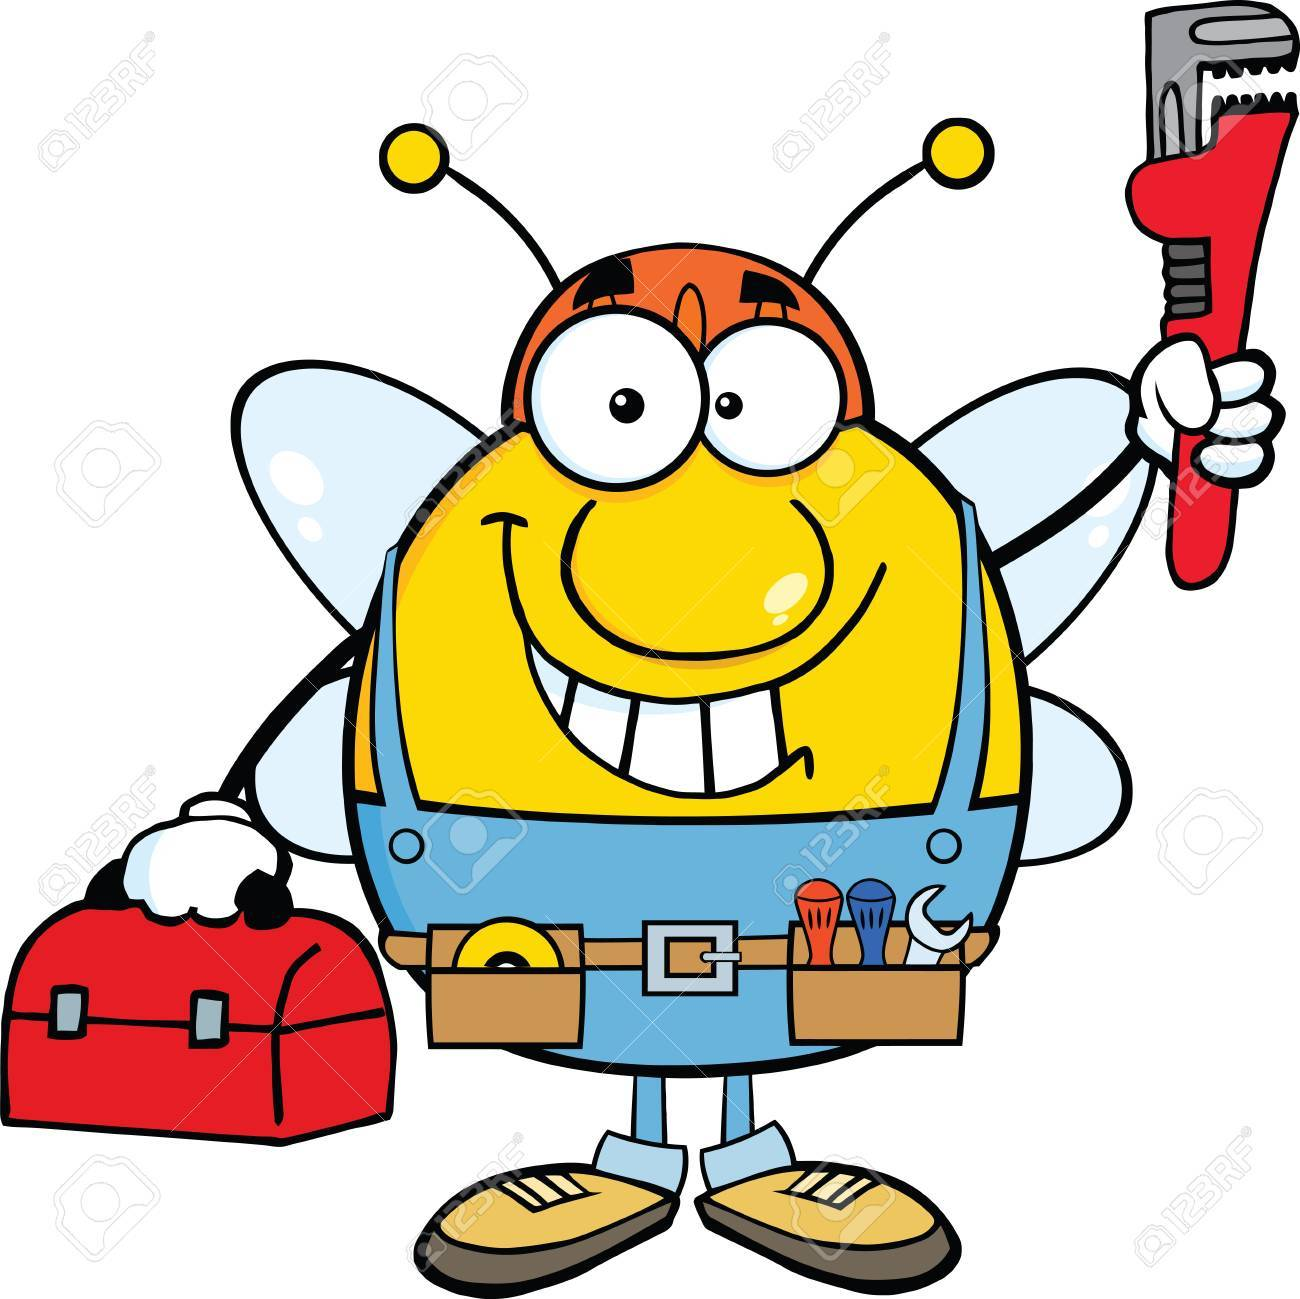 hight resolution of 1300x1299 pudgy bee plumber with wrench and tool box royalty free cliparts